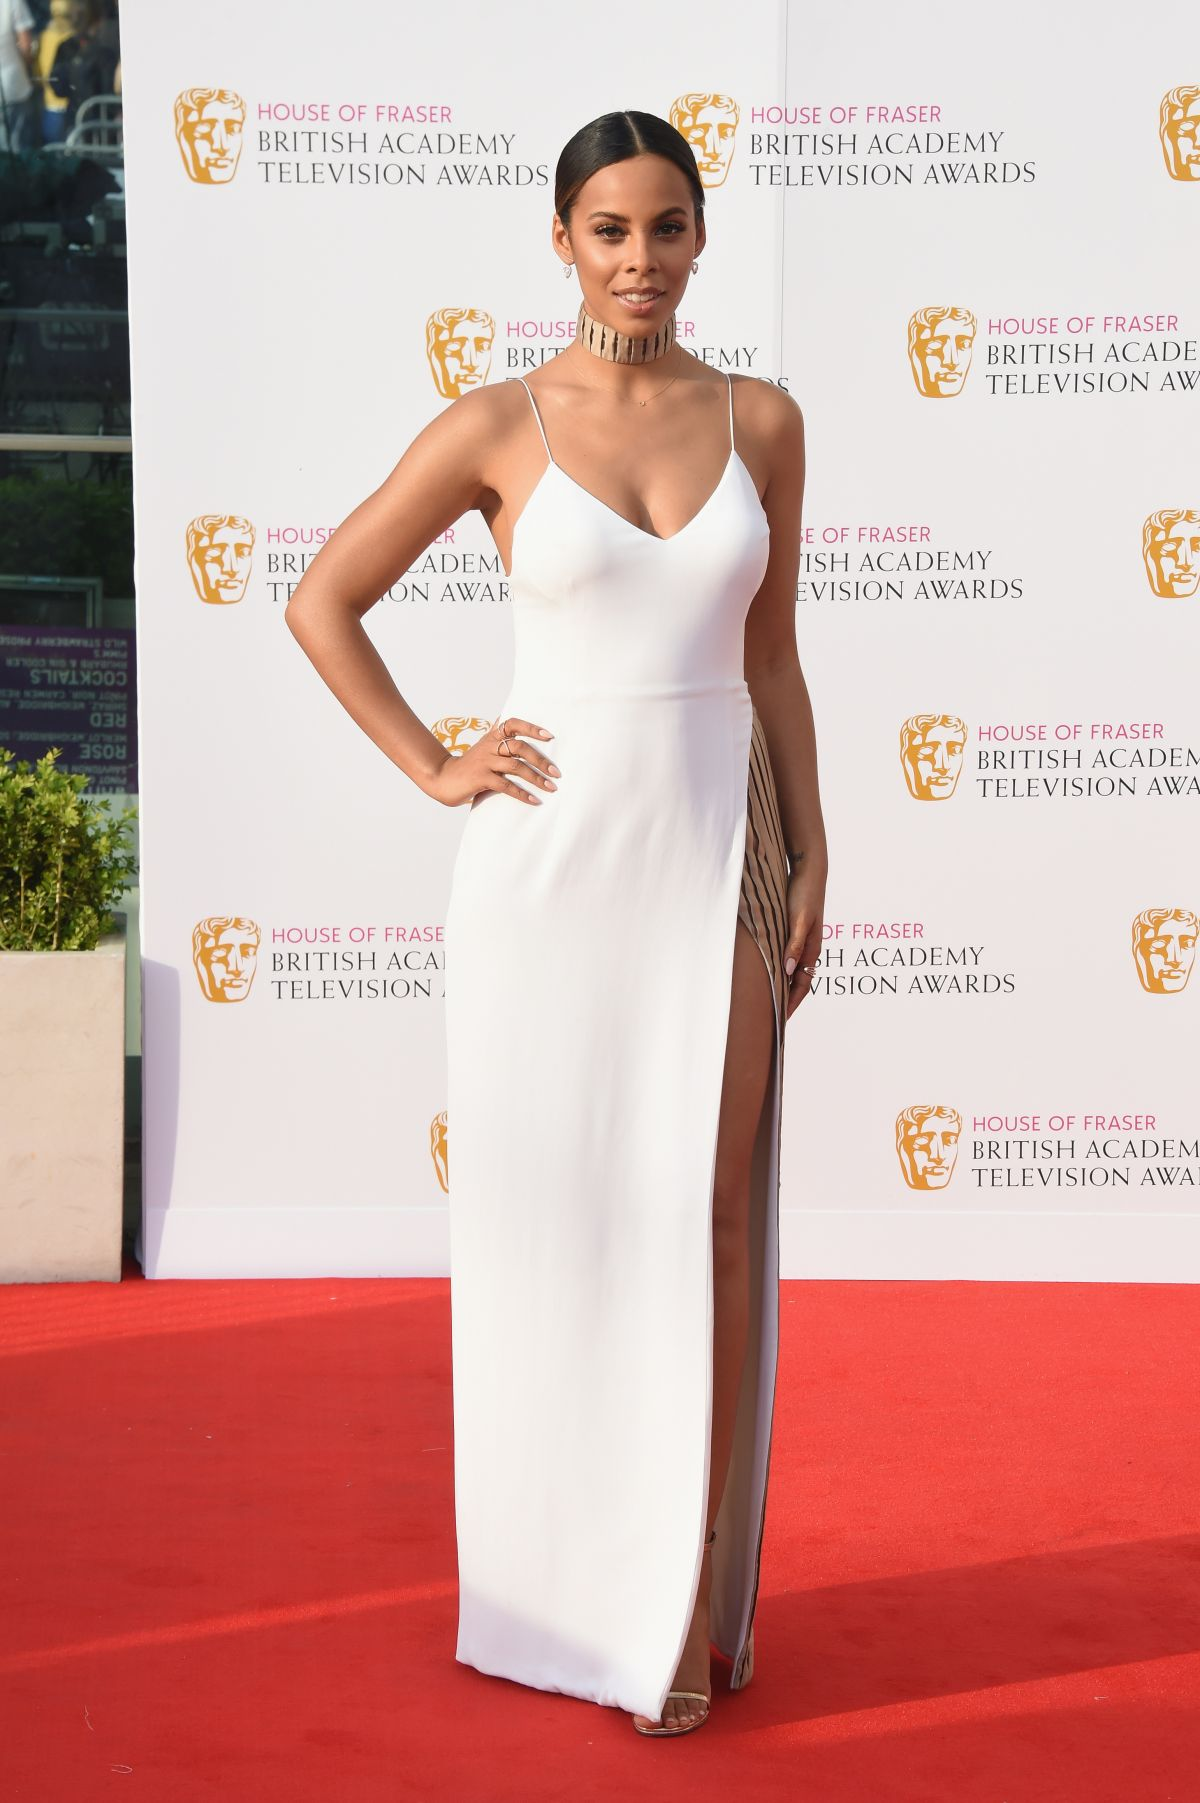 ROCHELLE HUMES at House of Fraser British Academy Television Awards 05/08/2016 Read more: http://www.hawtcelebs.com/search/academ/#ixzz48HjyPU2c